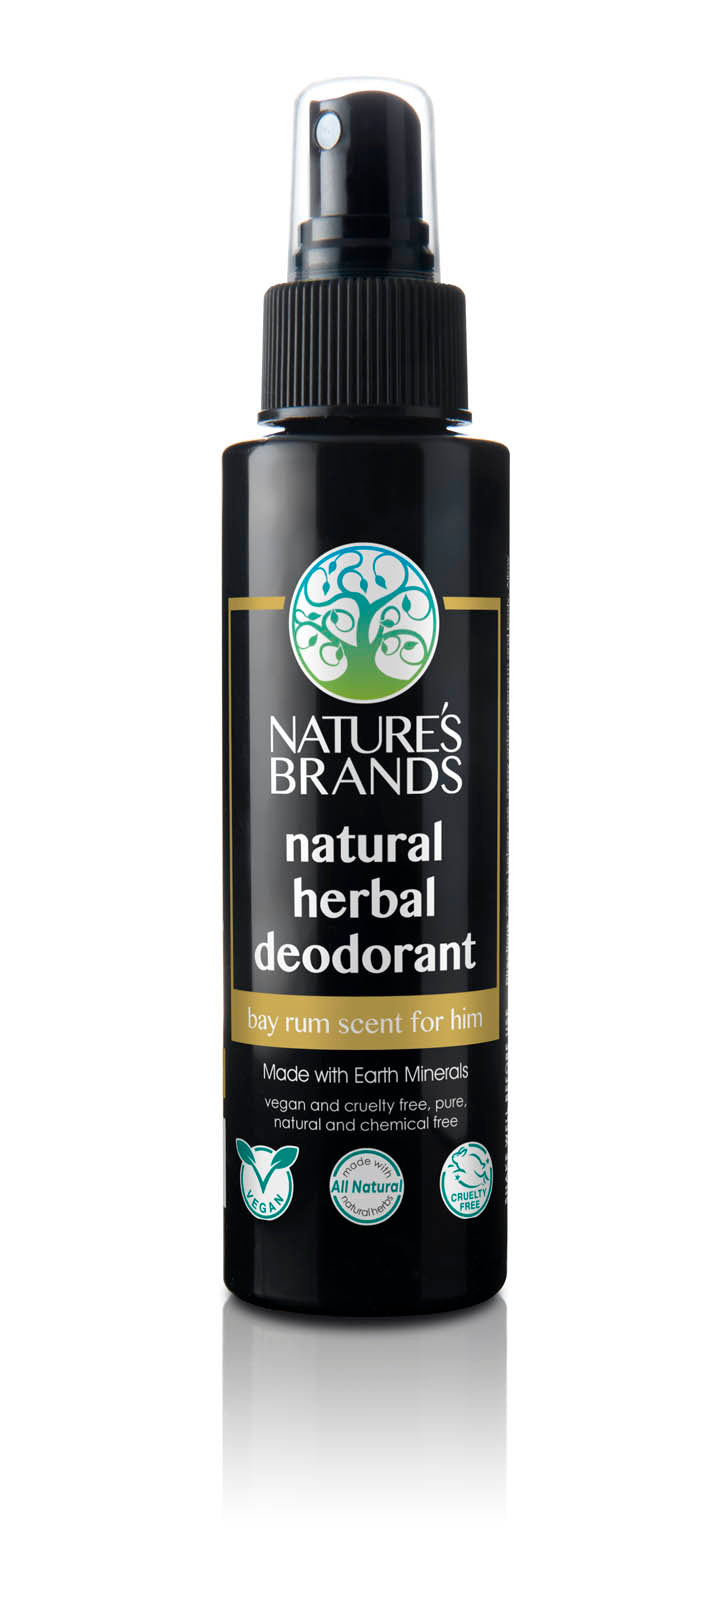 Herbal Choice Mari Natural Deodorant - Herbal Choice Mari Natural Deodorant - Herbal Choice Mari Natural Deodorant